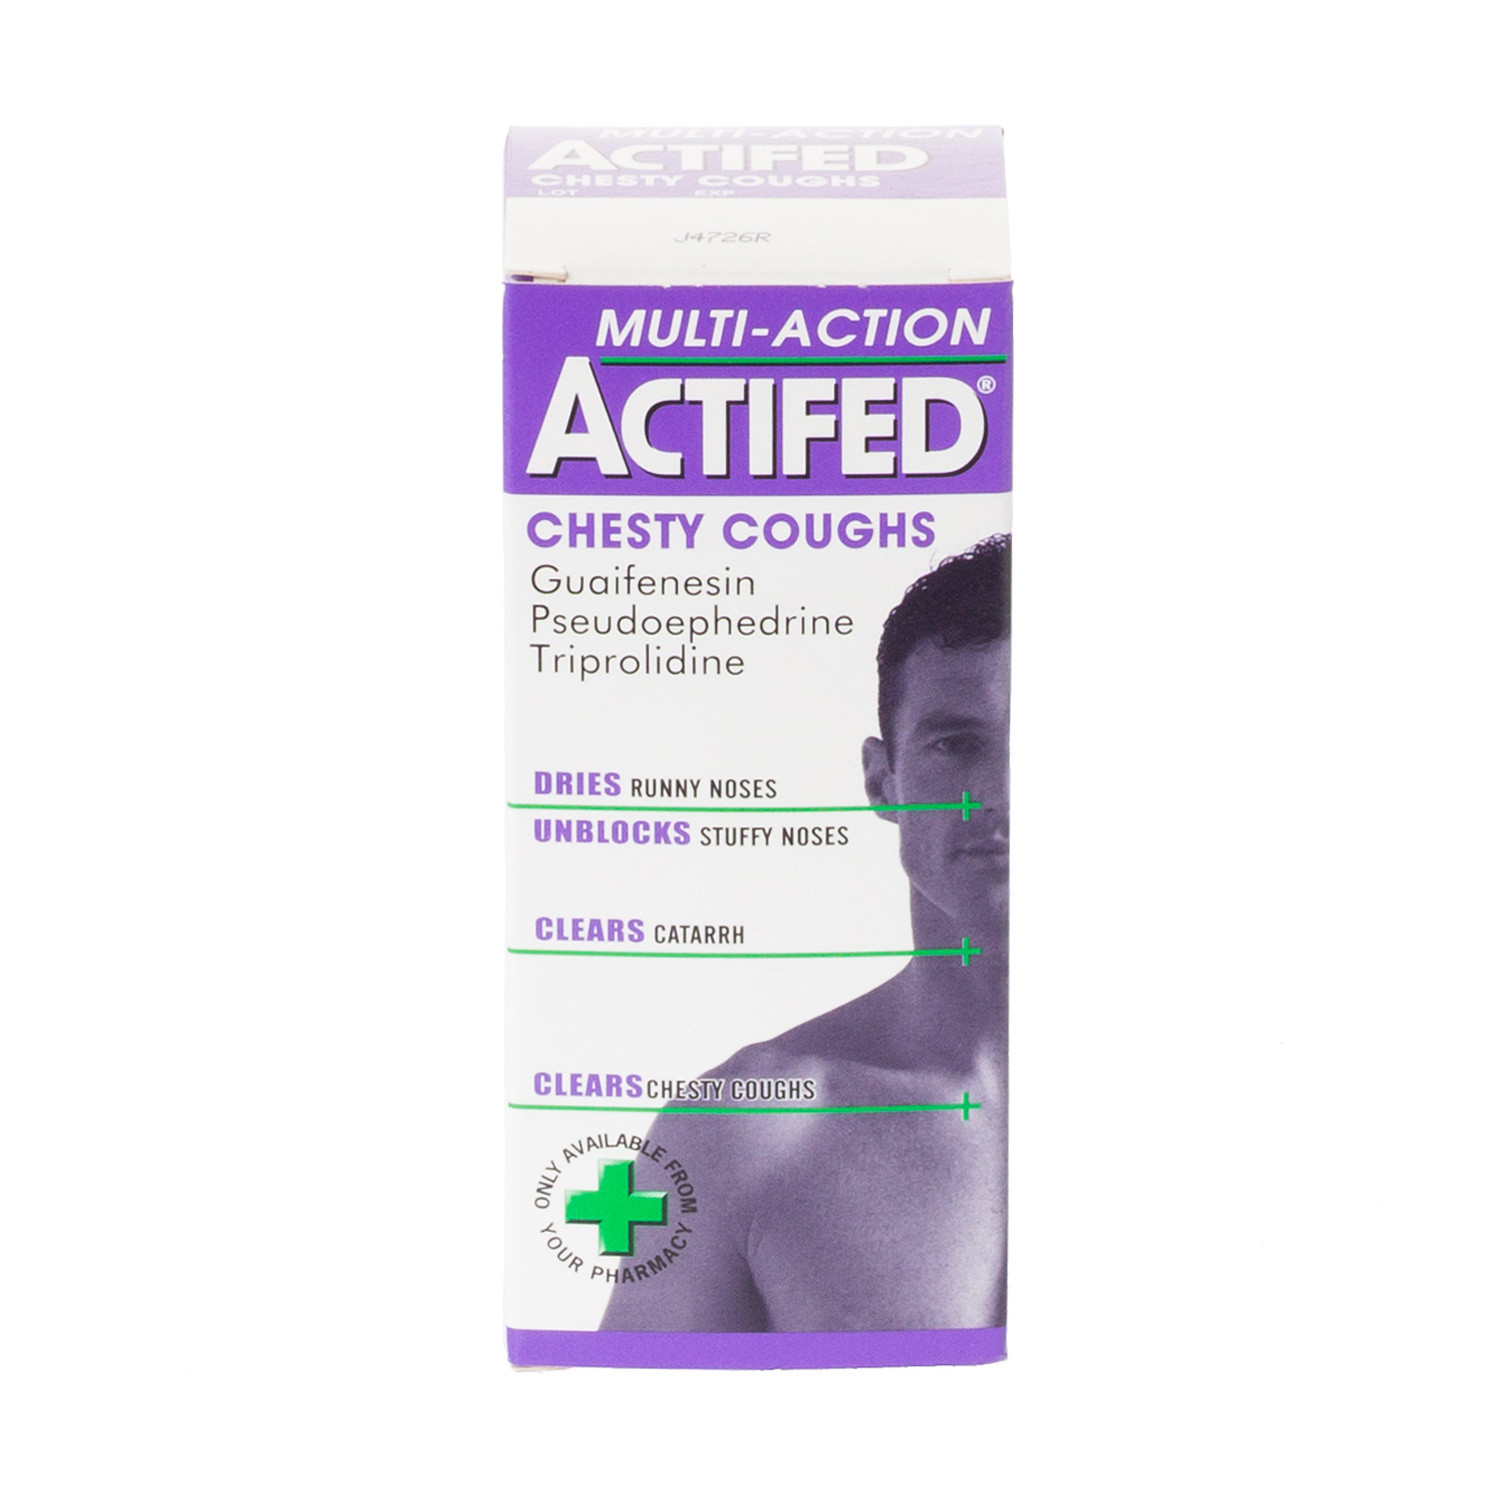 Stockists of Actifed Multi-Action Chesty Coughs